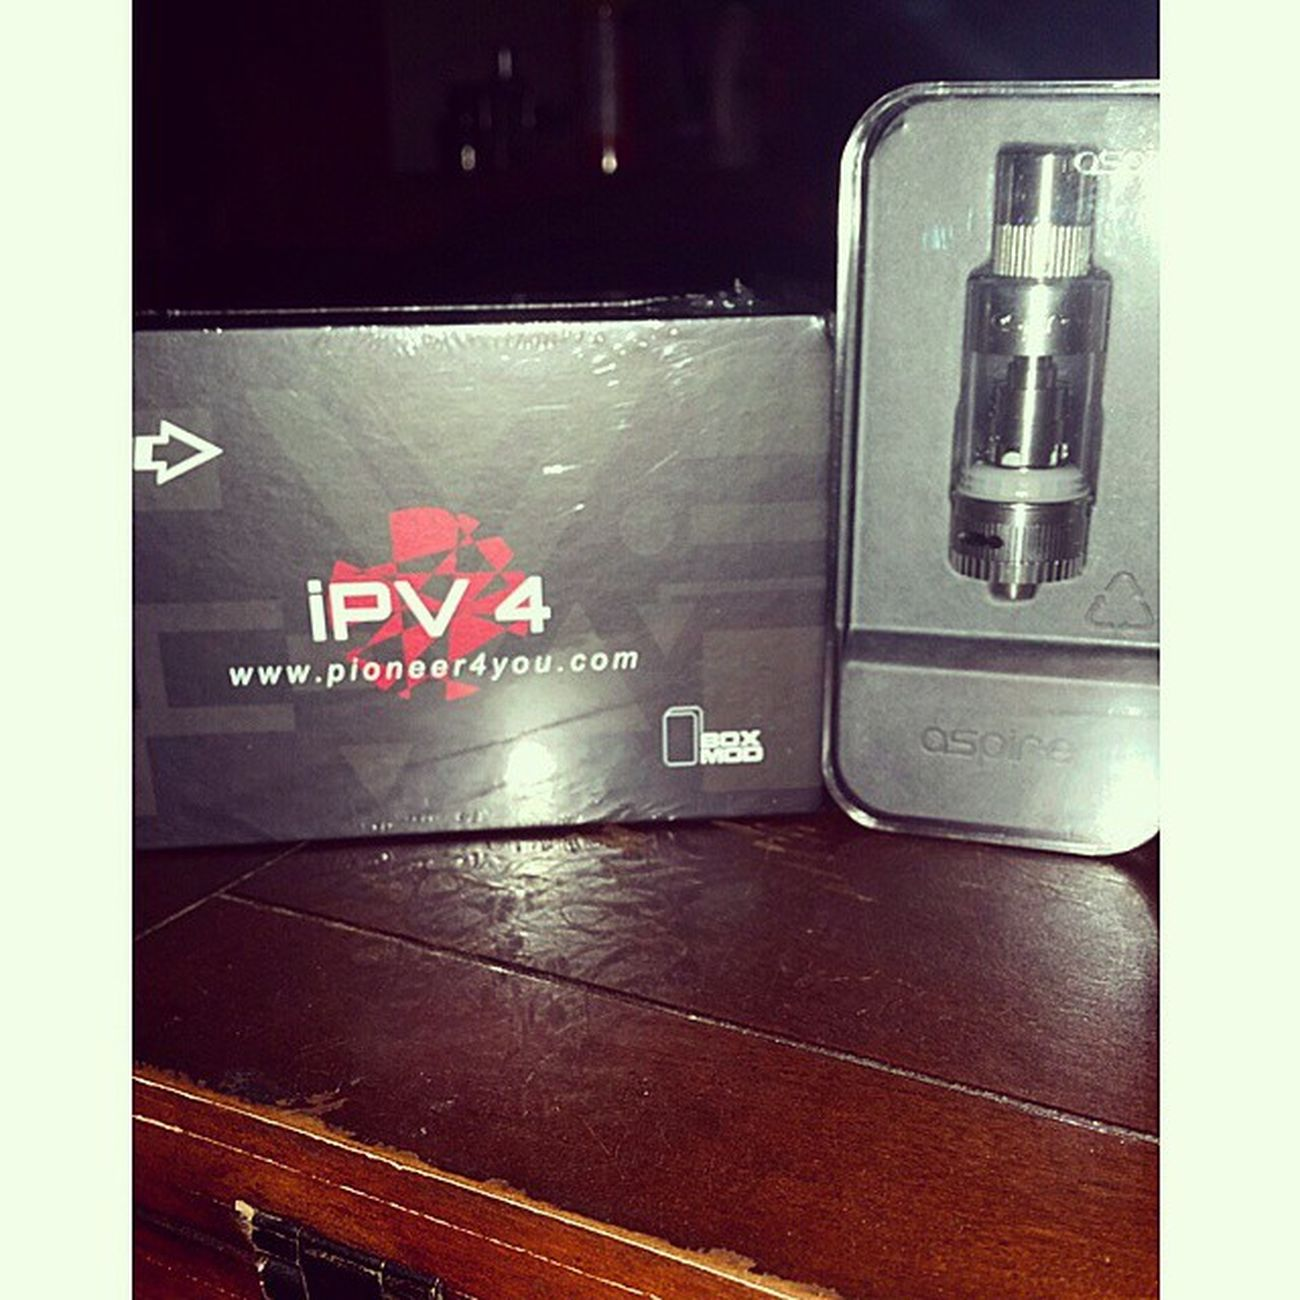 Mod has arrived!!! Boxmod Vape Ipv4 Black Atlantisv2tank Variablevoltage Variablewattage Temperaturecontrol 100W Thank you @vapesocietysupply for the crazy fast shipping!